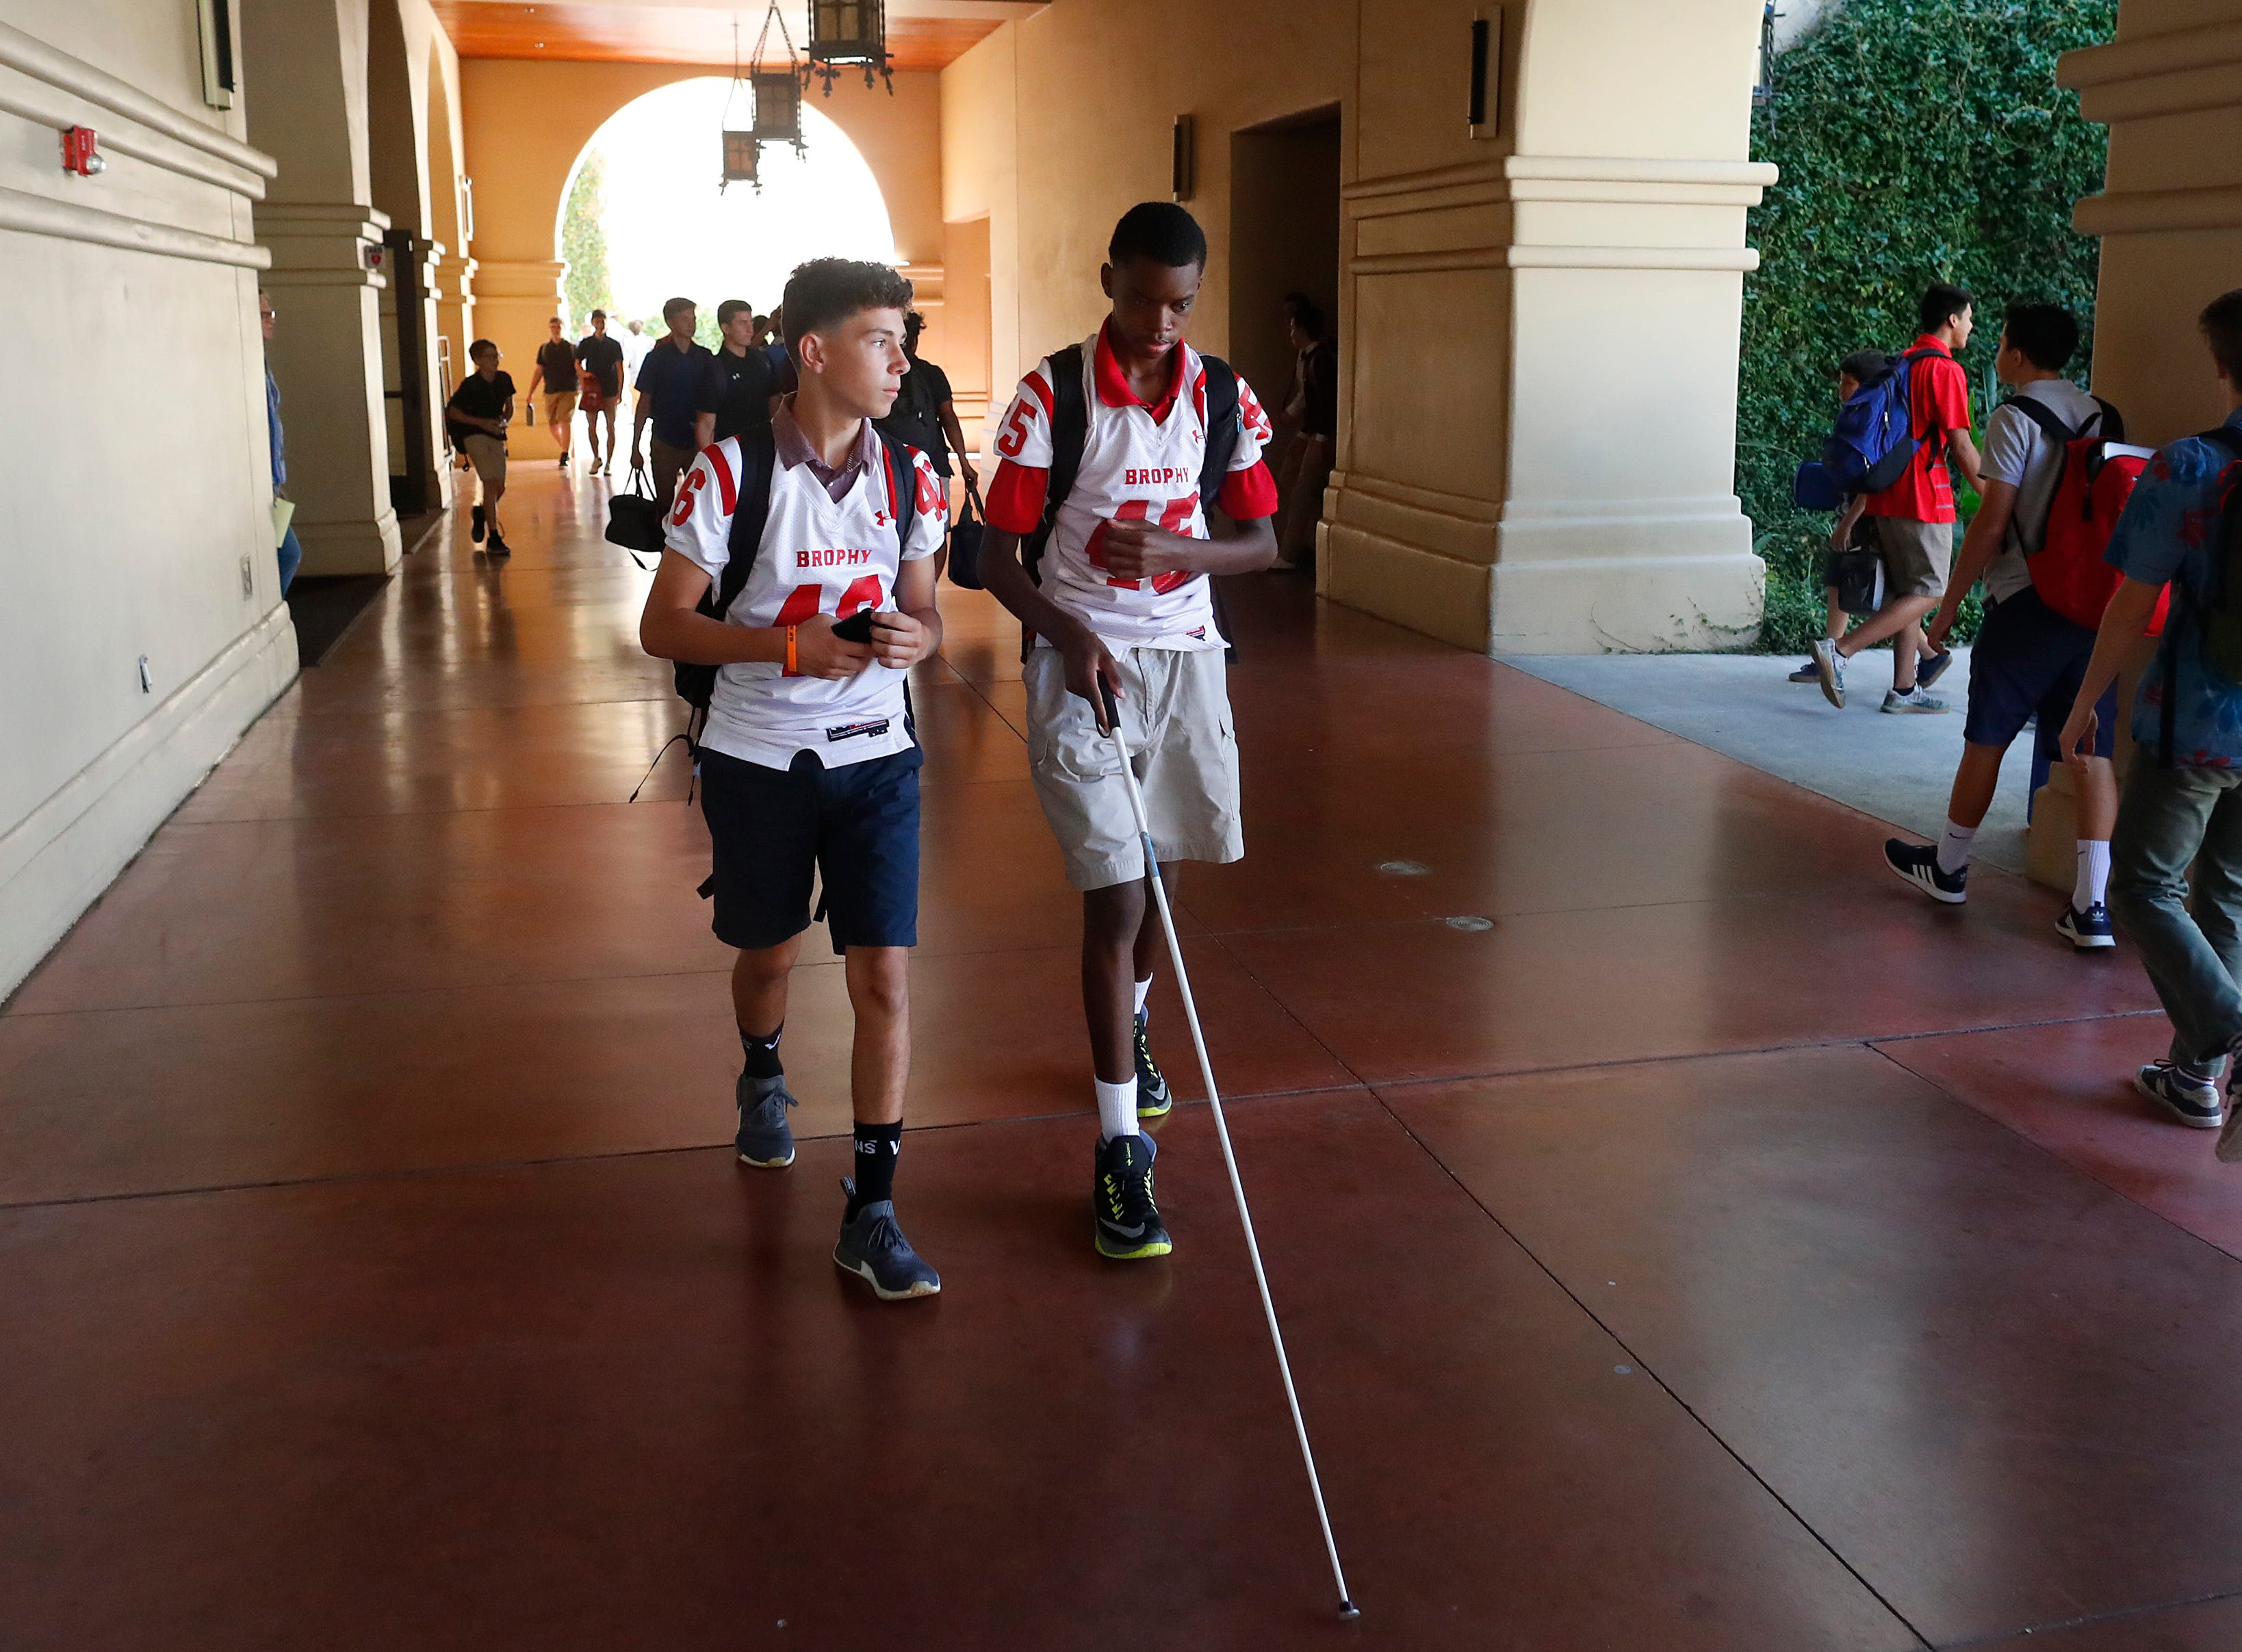 Nick Copeland (L) walks with Adonis Watt between classes at Brophy College Preparatory in Phoenix, Ariz. on Sept. 5, 2018. Freshmen players wear their jerseys to school on game days.